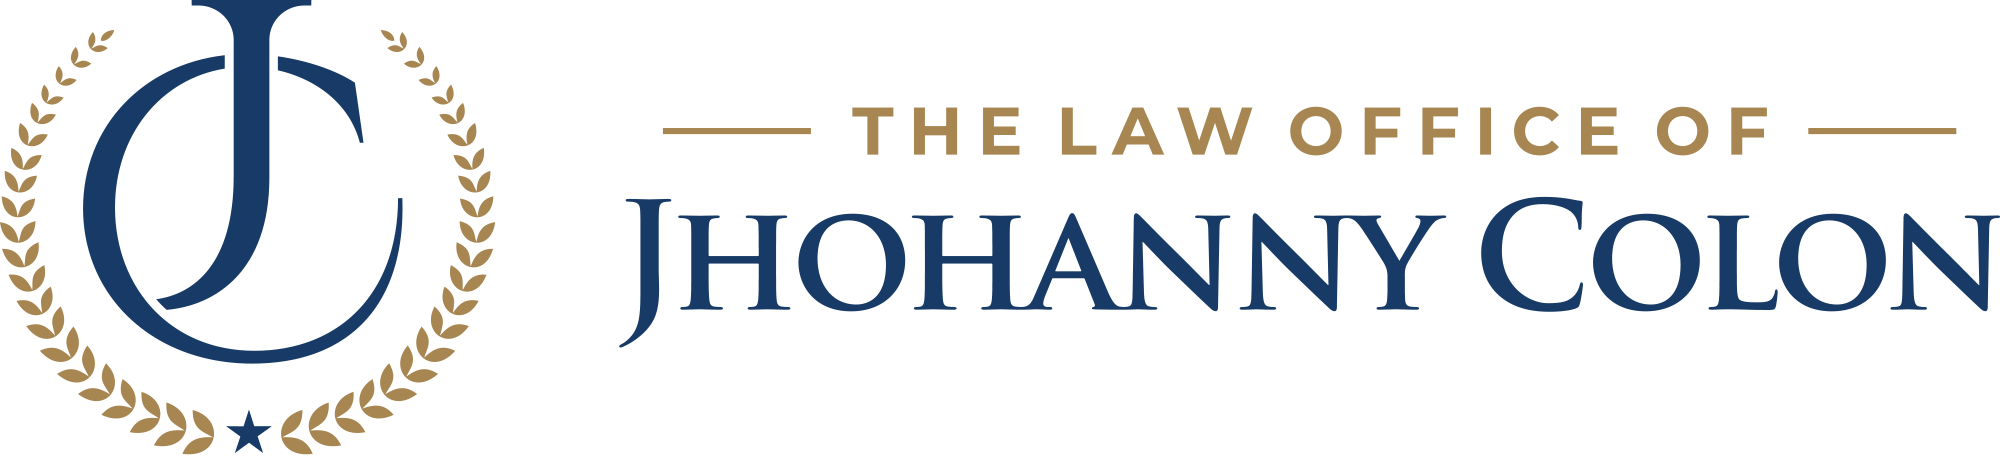 Jhohanny Colon Law Firm